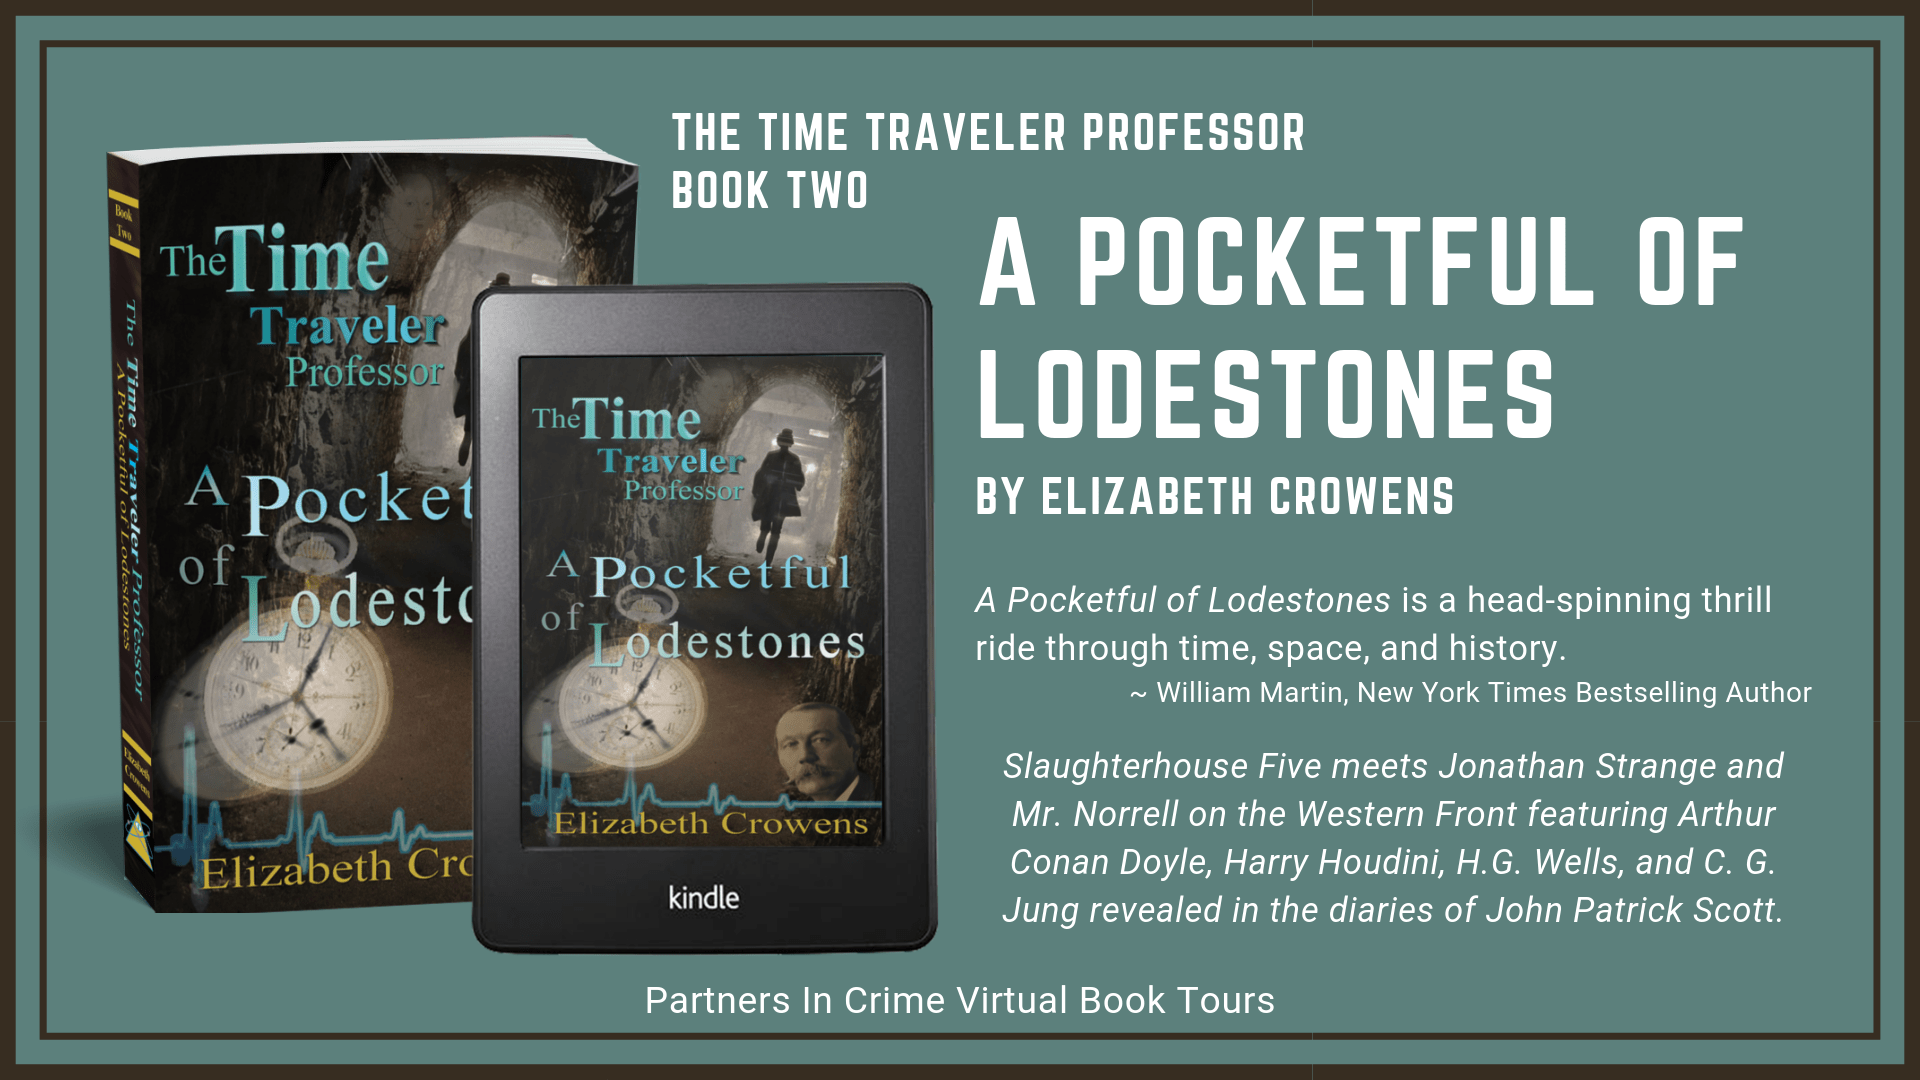 A Pocketful Of Lodestones by Elizabeth Crowens